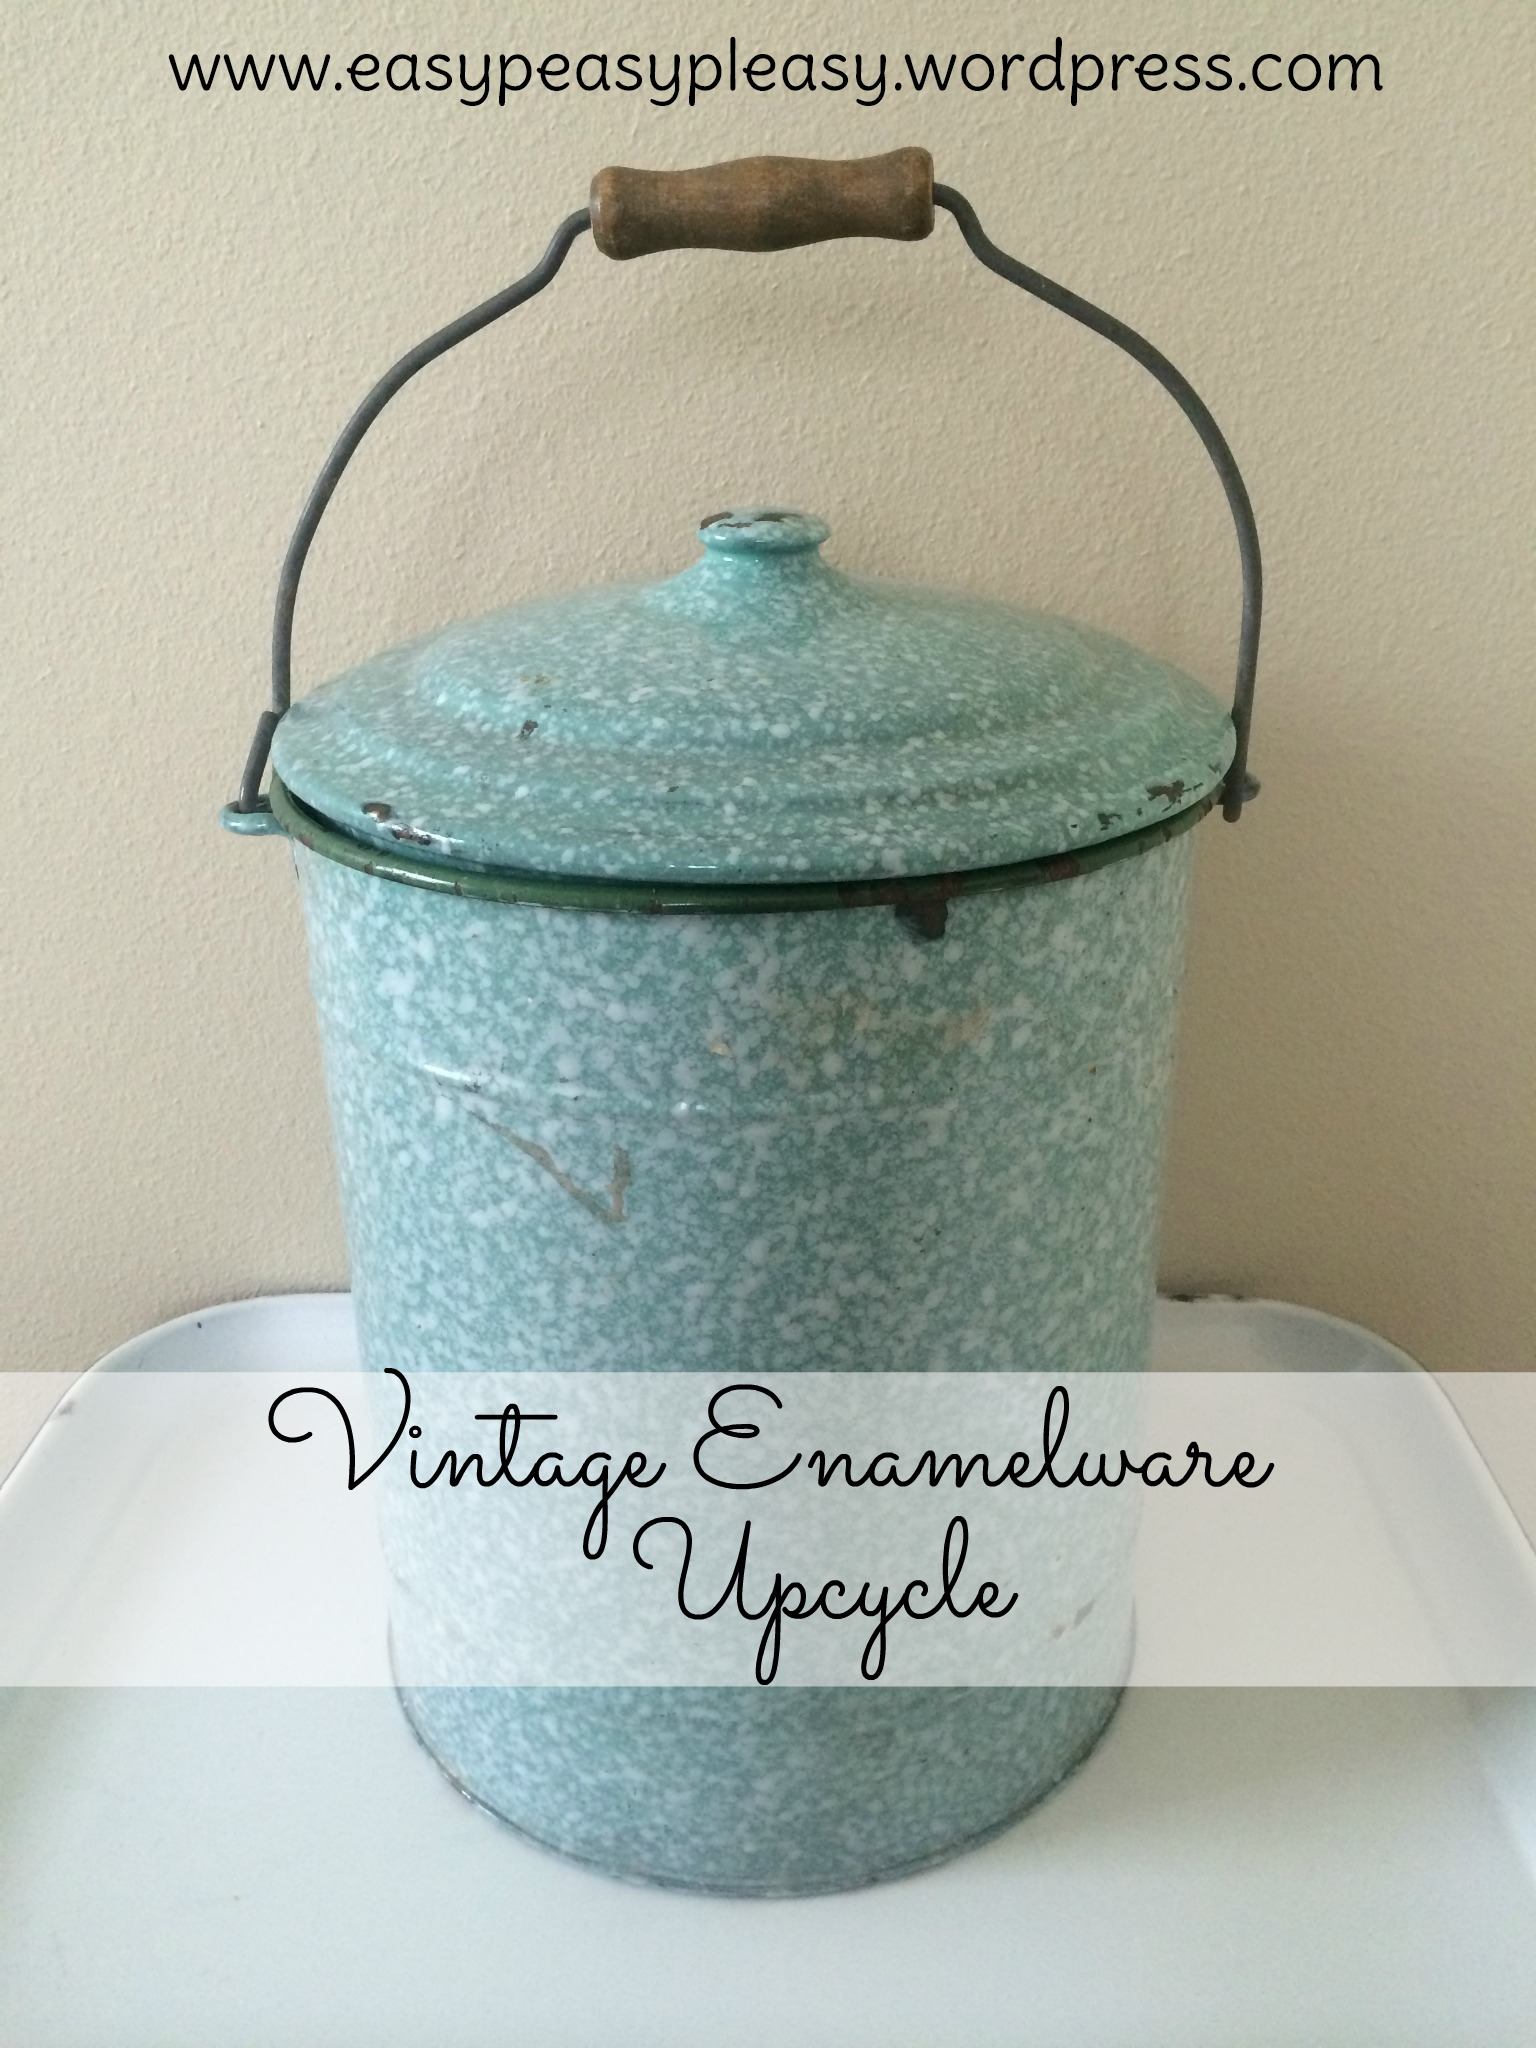 For more Vintage Enamel Upcycle Ideas check out https://easypeasypleasy.com